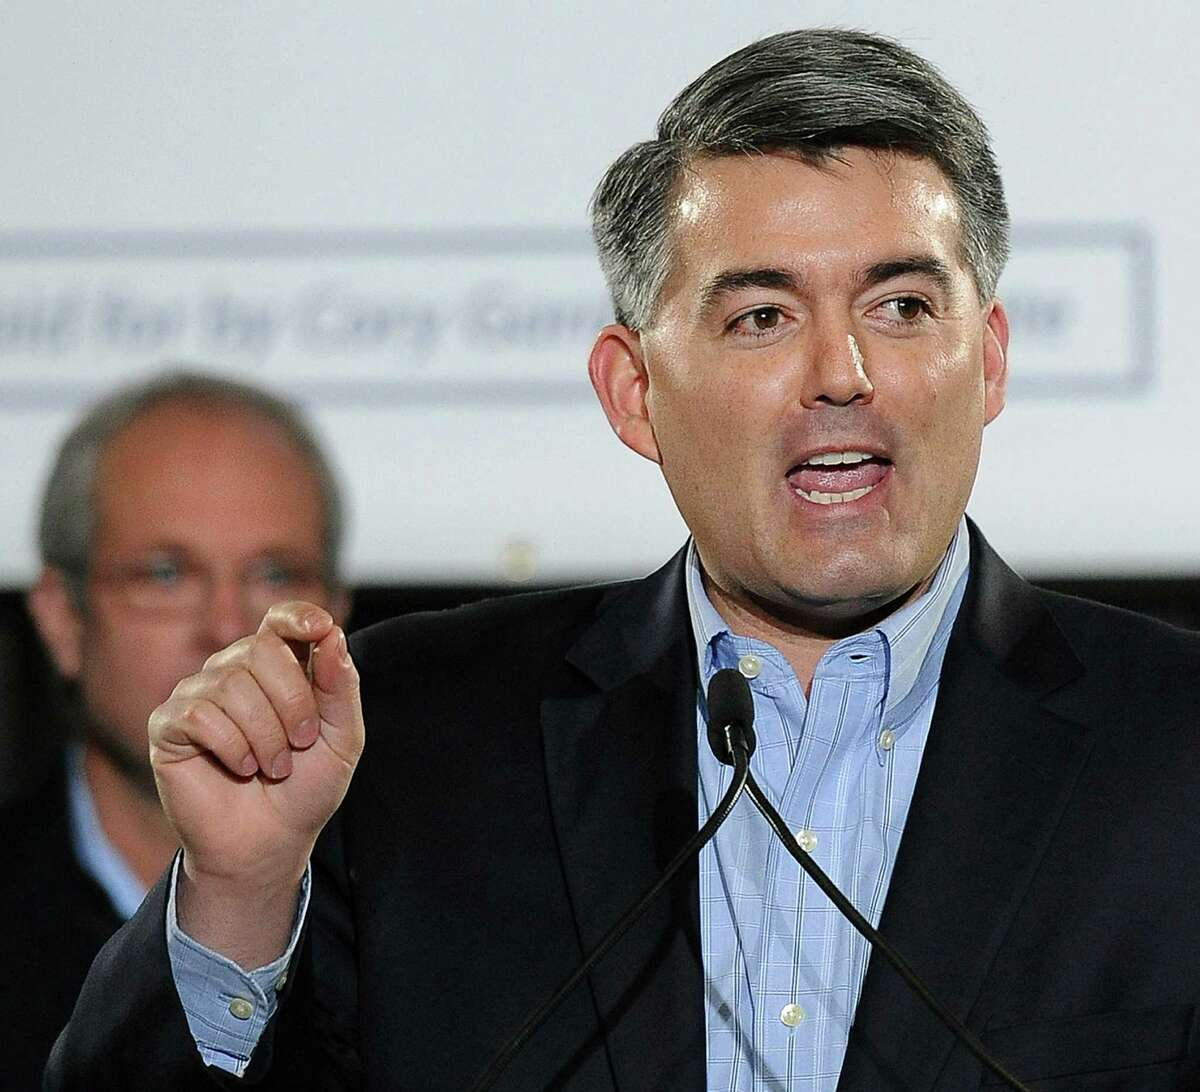 A bill sponsored by Rep. Cory Gardner, R-Colo., would drastically speed up LNG export approvals.